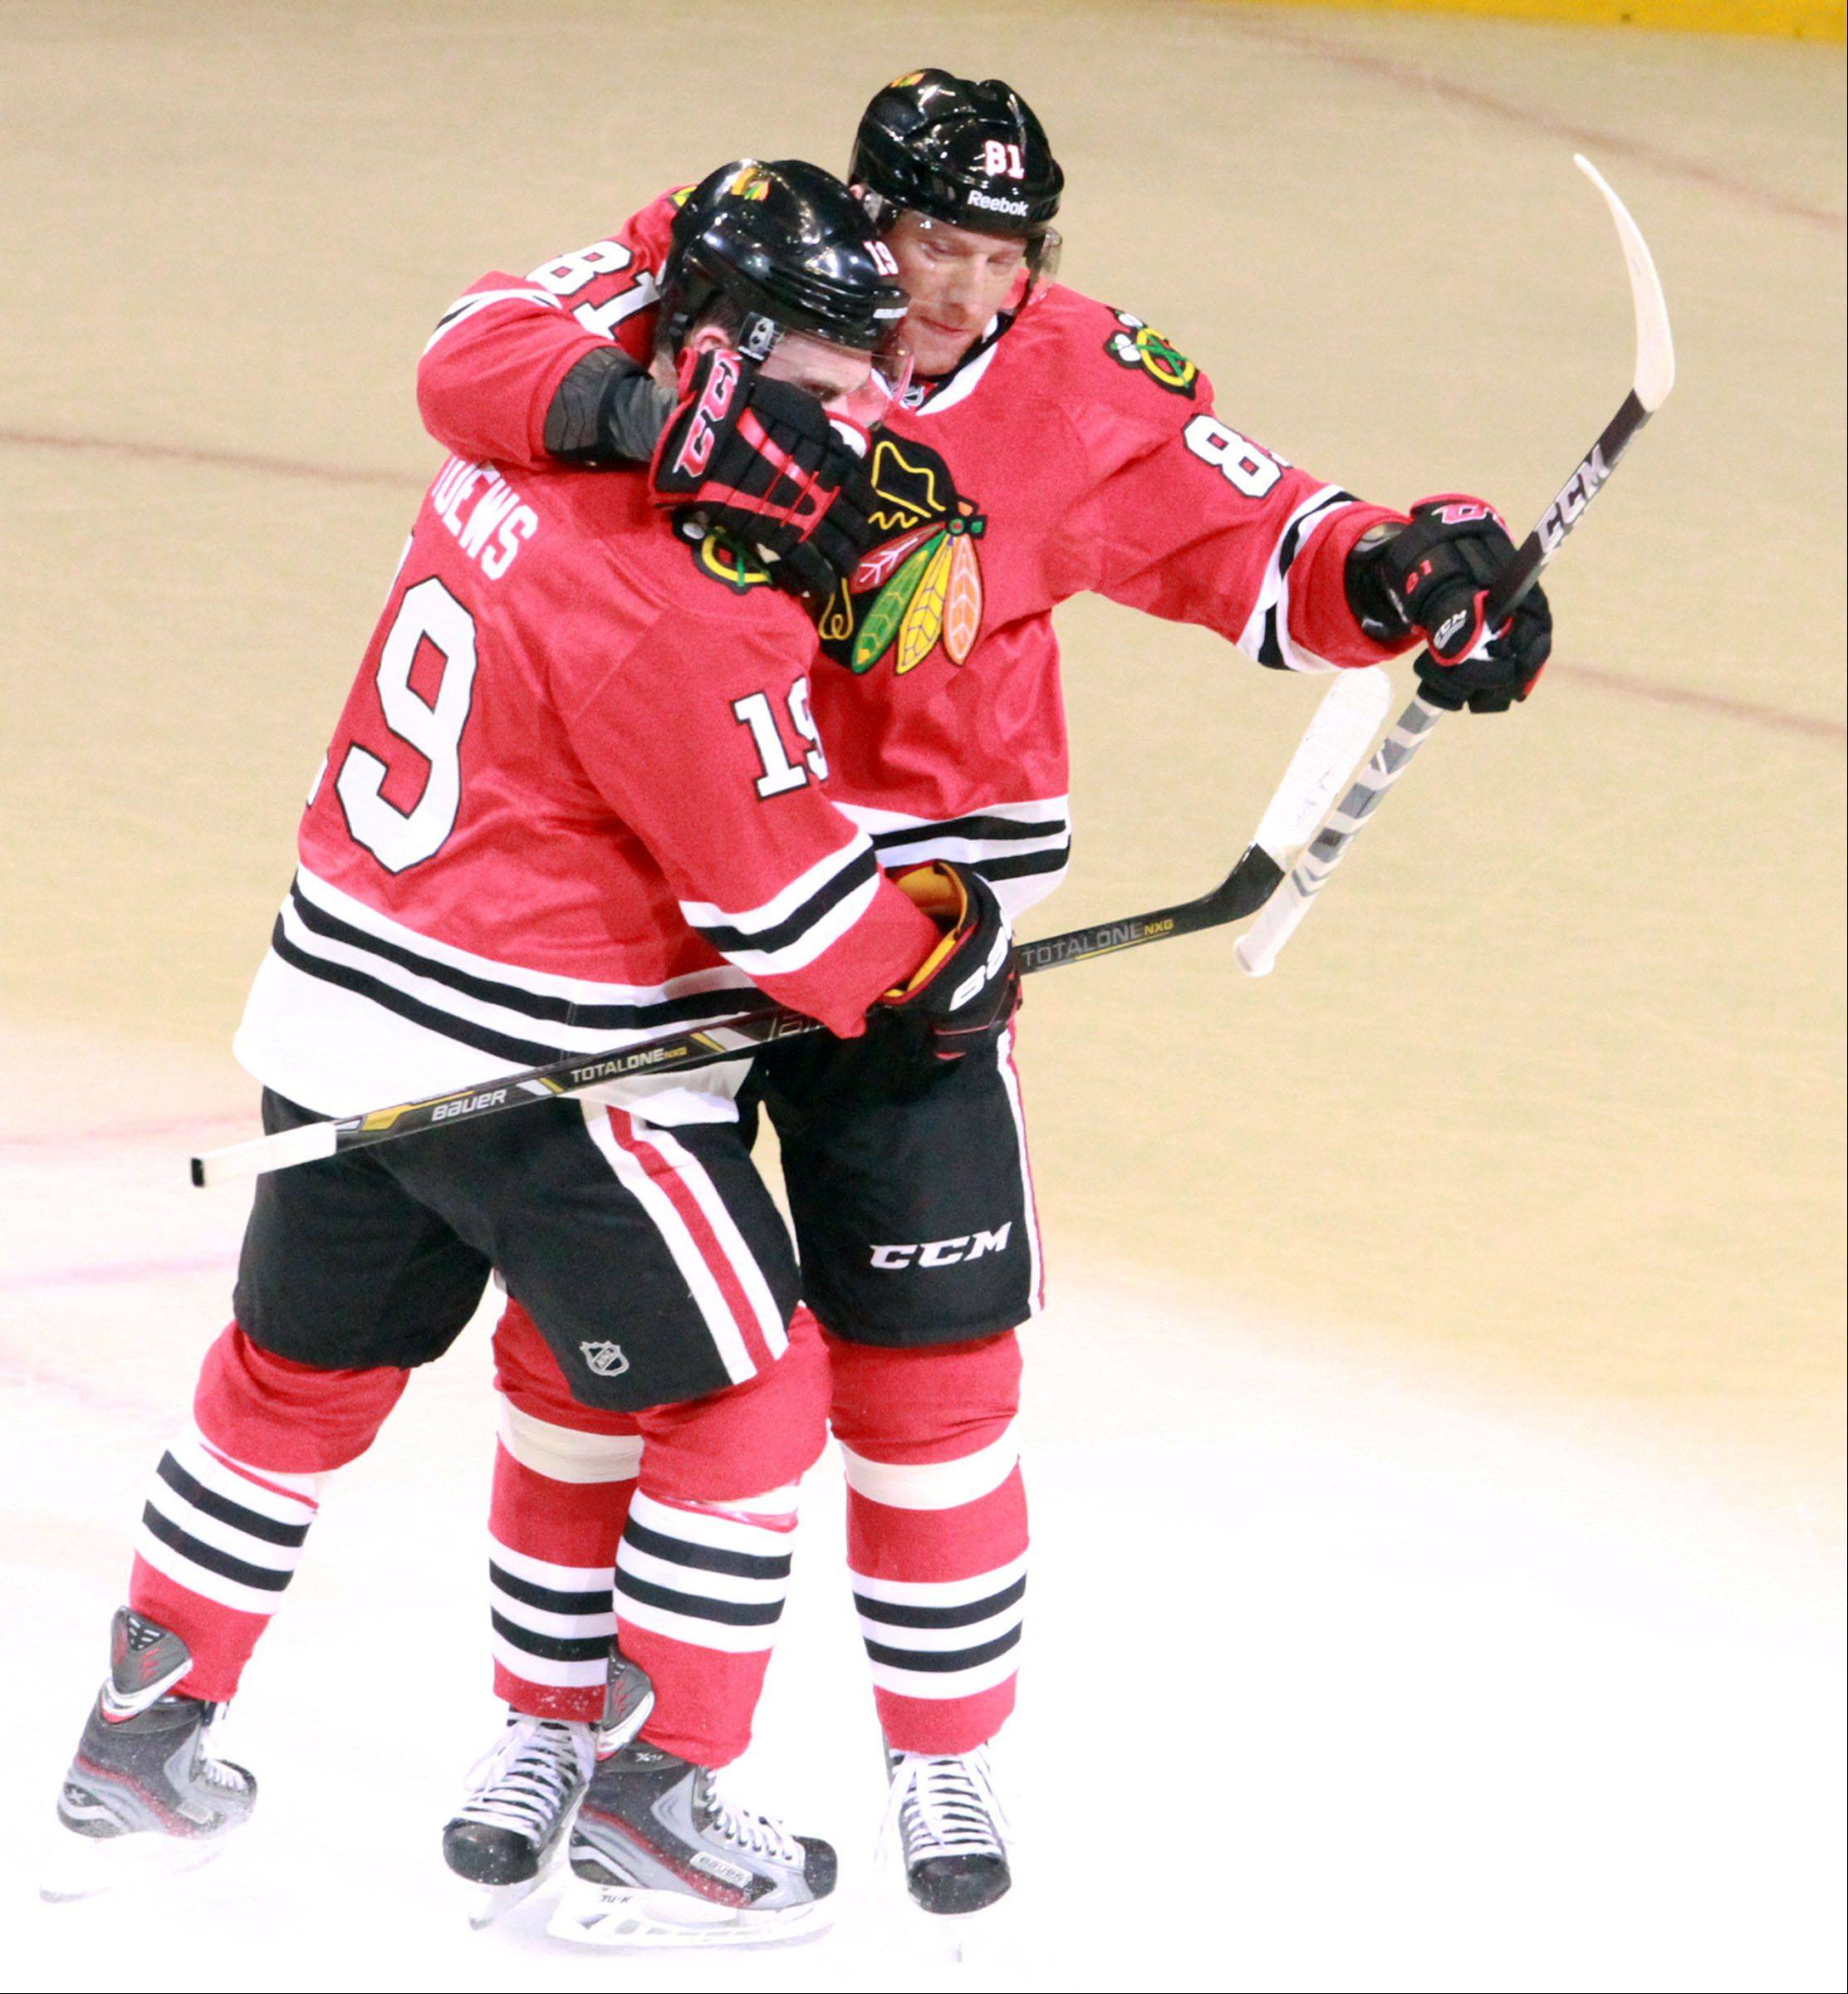 Blackhawks center Jonathan Toews celebrates a goal by right wing Marian Hossa against Minnesota Wild in game 5 of the NHL Western Conference first-round playoff series at the United Center Thursday.